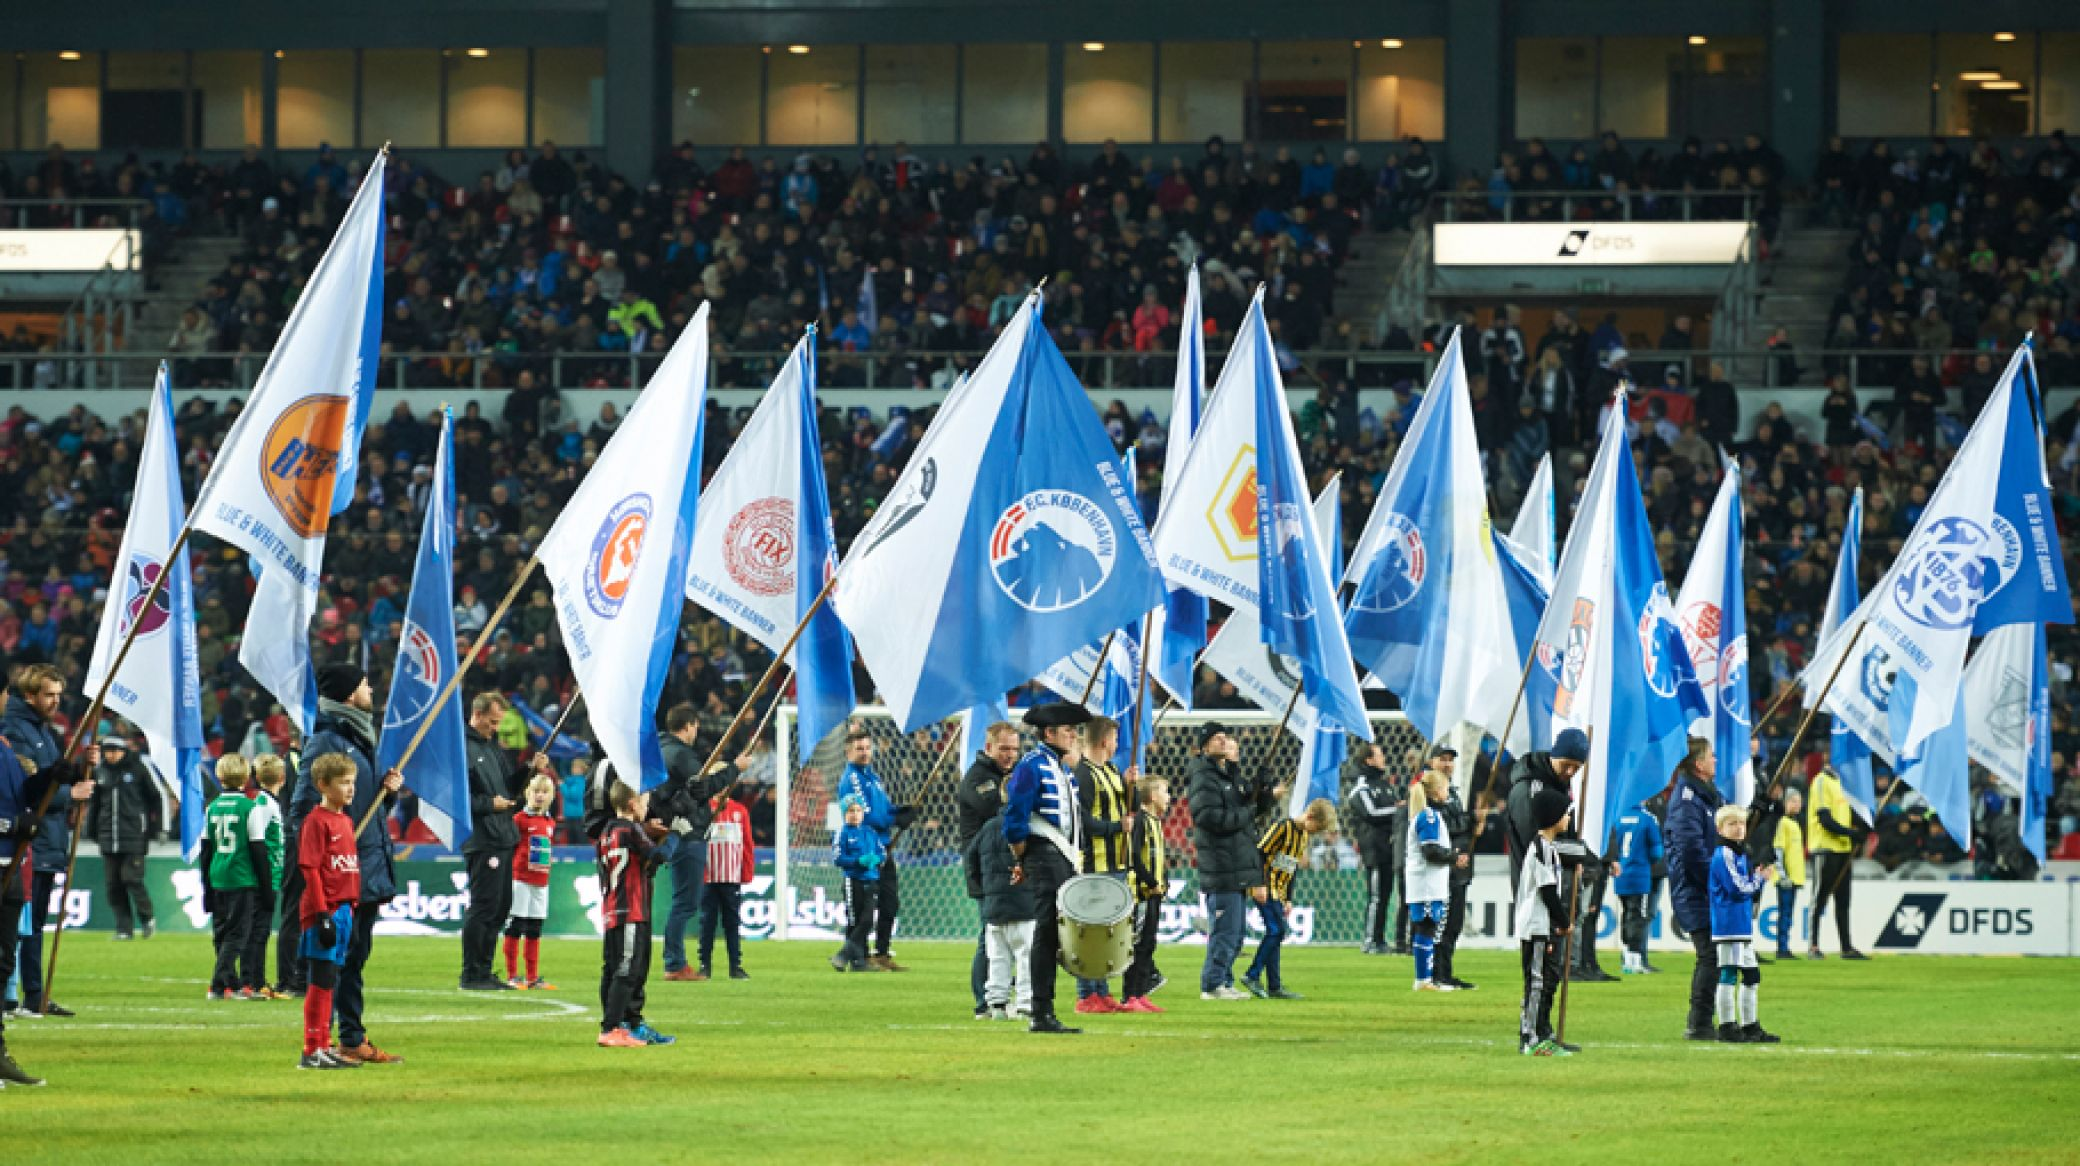 Blue & White Banner Day mod Lyngby